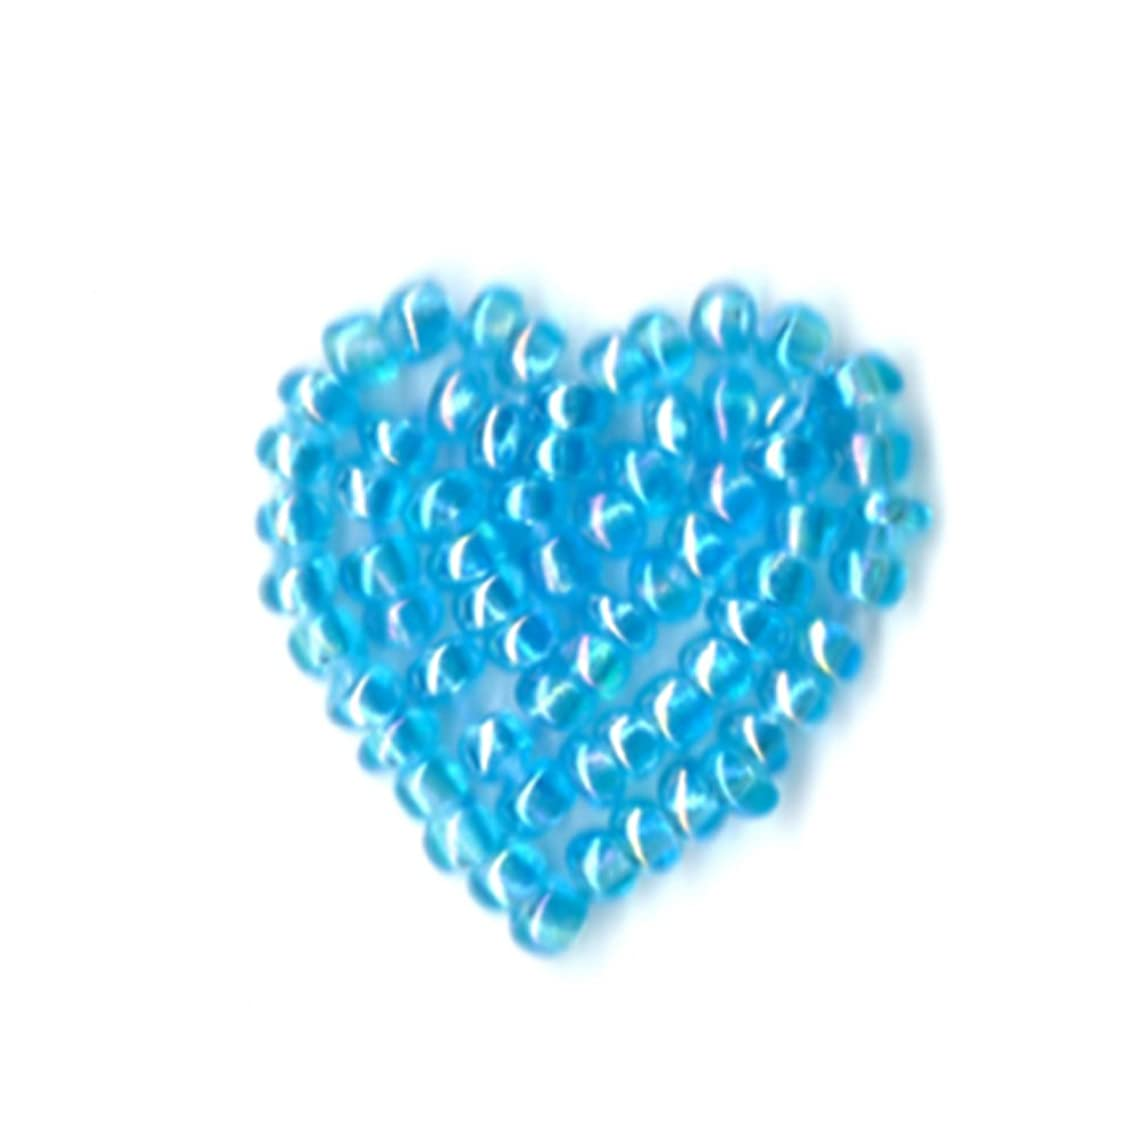 Venus Ribbon Iron-On Beaded Heart Applique, 4-Piece, 3/4-Inch by 3/4-Inch, Turquoise